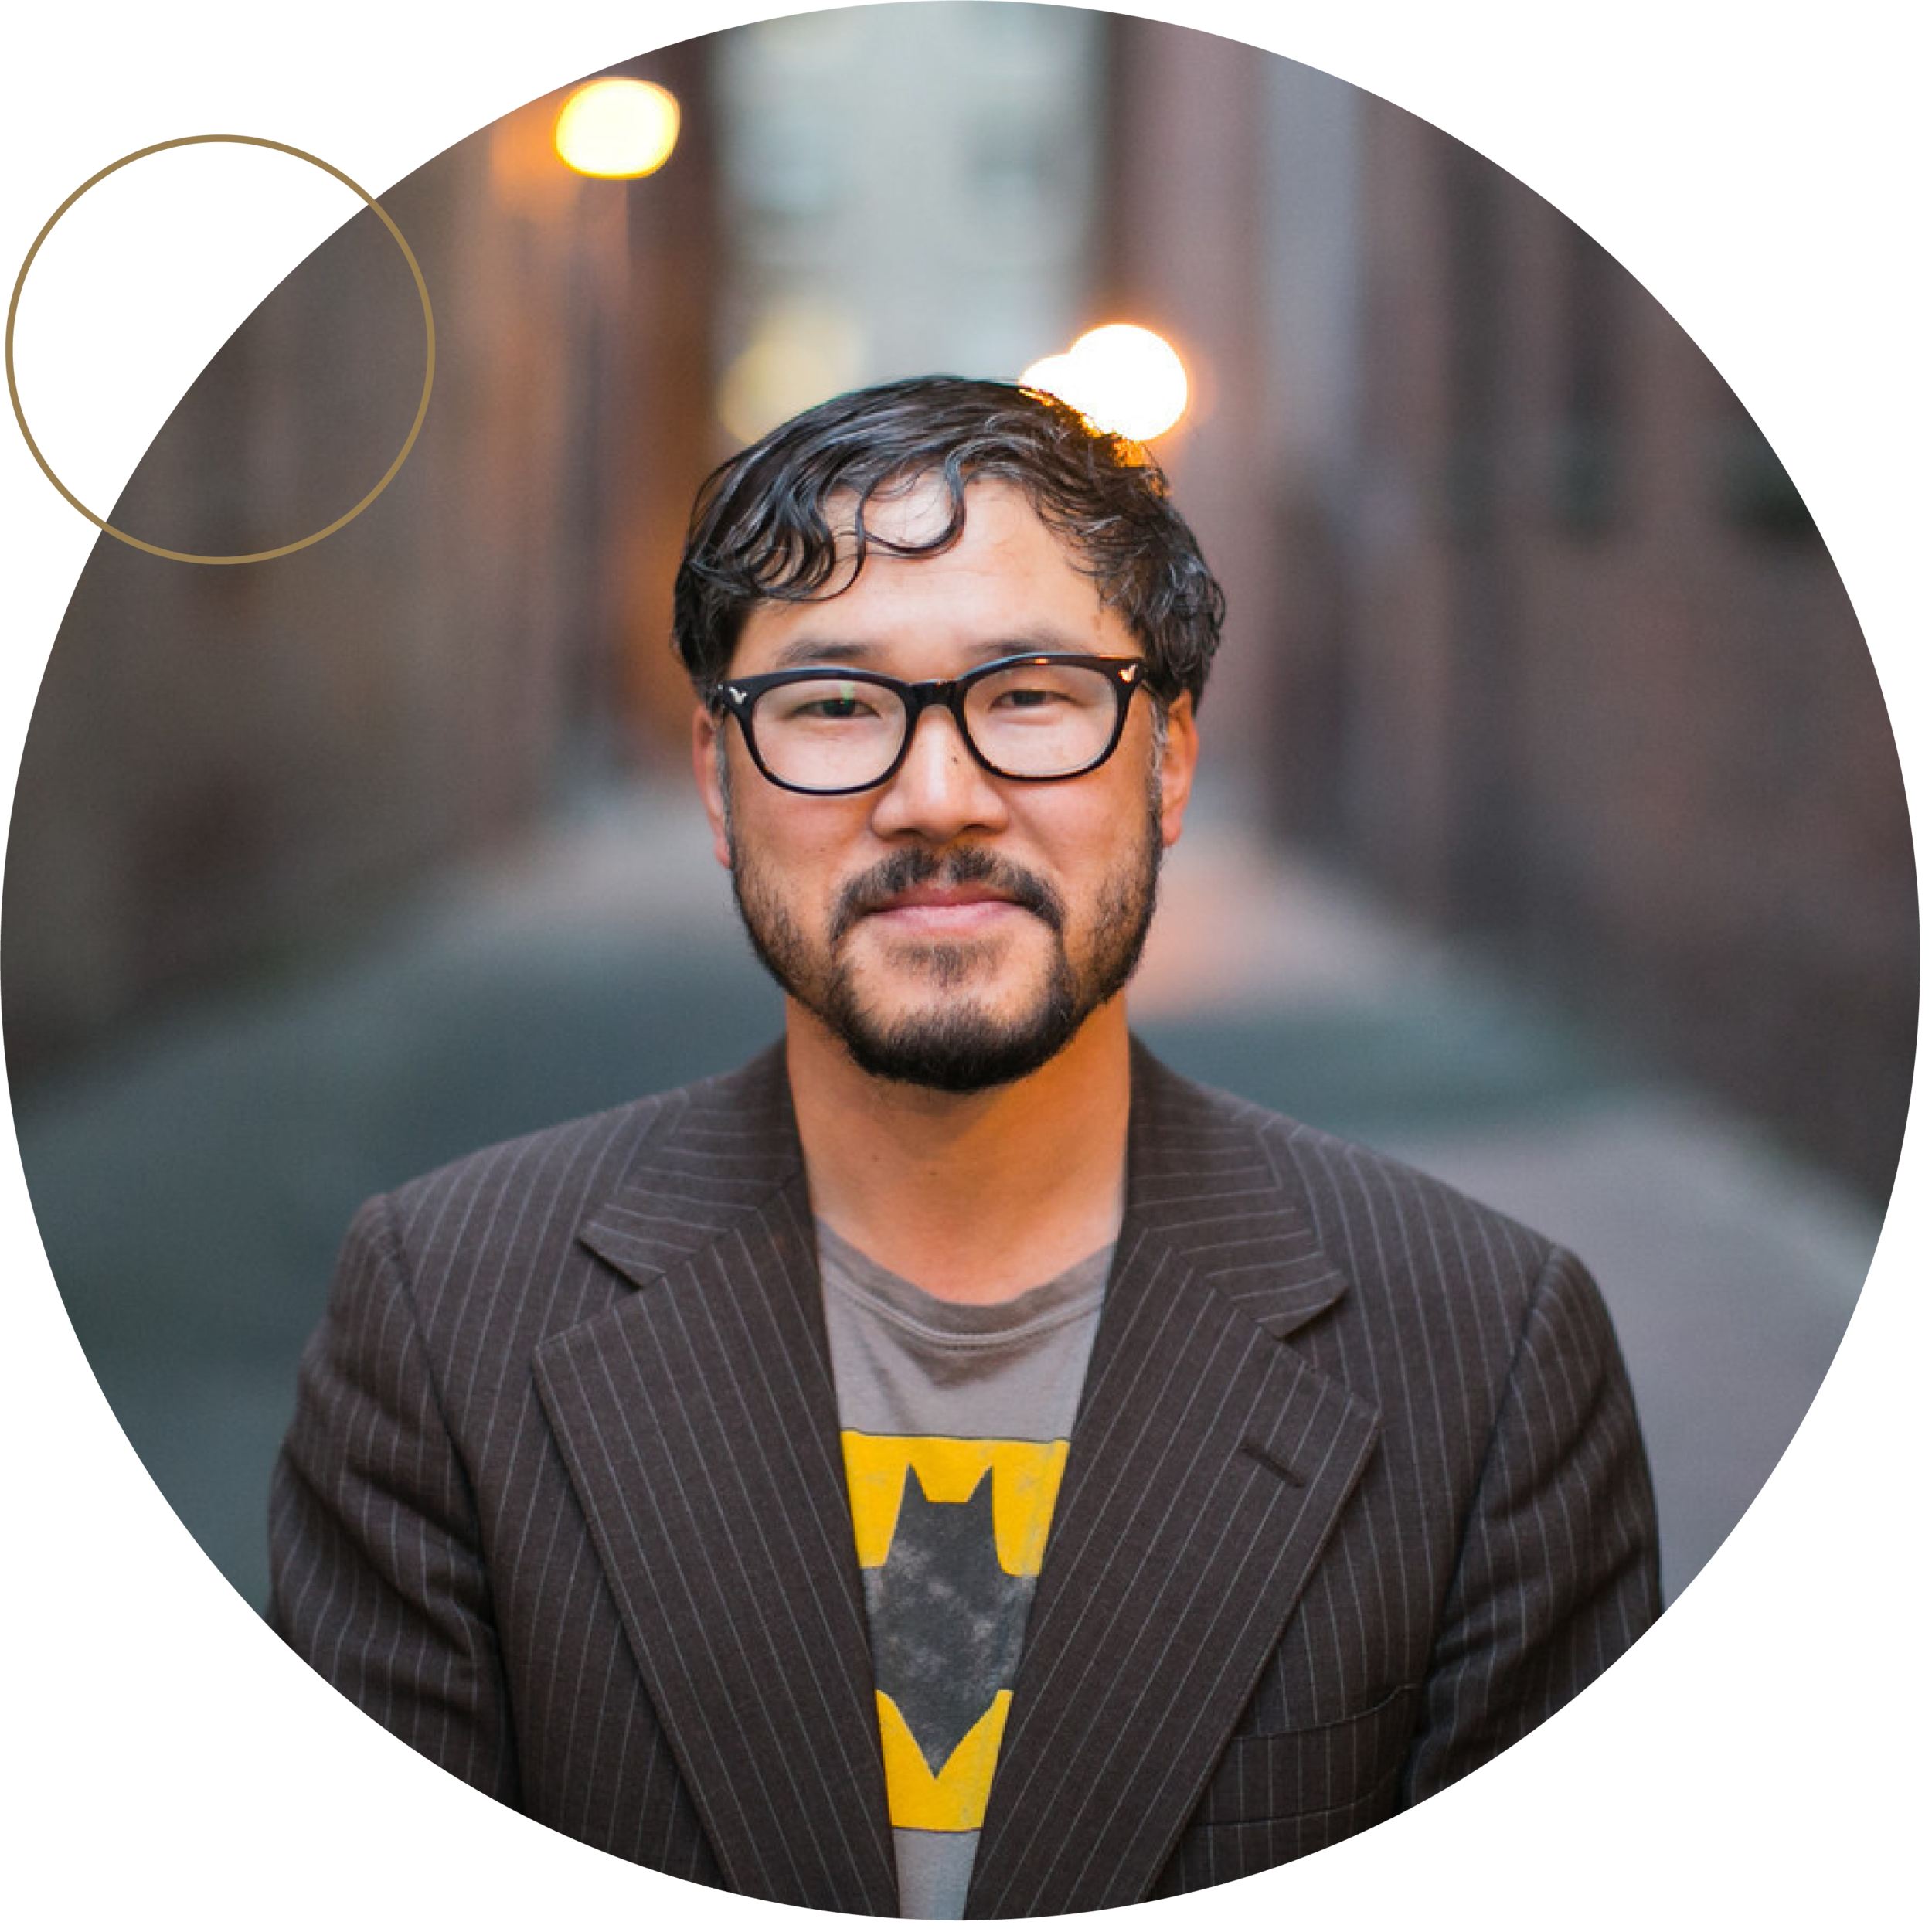 Eugene Cho - Eugene Cho is the founder and former Senior Pastor of Quest Church – an urban, multi-cultural and multi-generational church in Seattle, Washington. Rev. Cho's many passions involve leadership, justice, the whole Gospel, and the pursuit of God's Kingdom here on this earth.